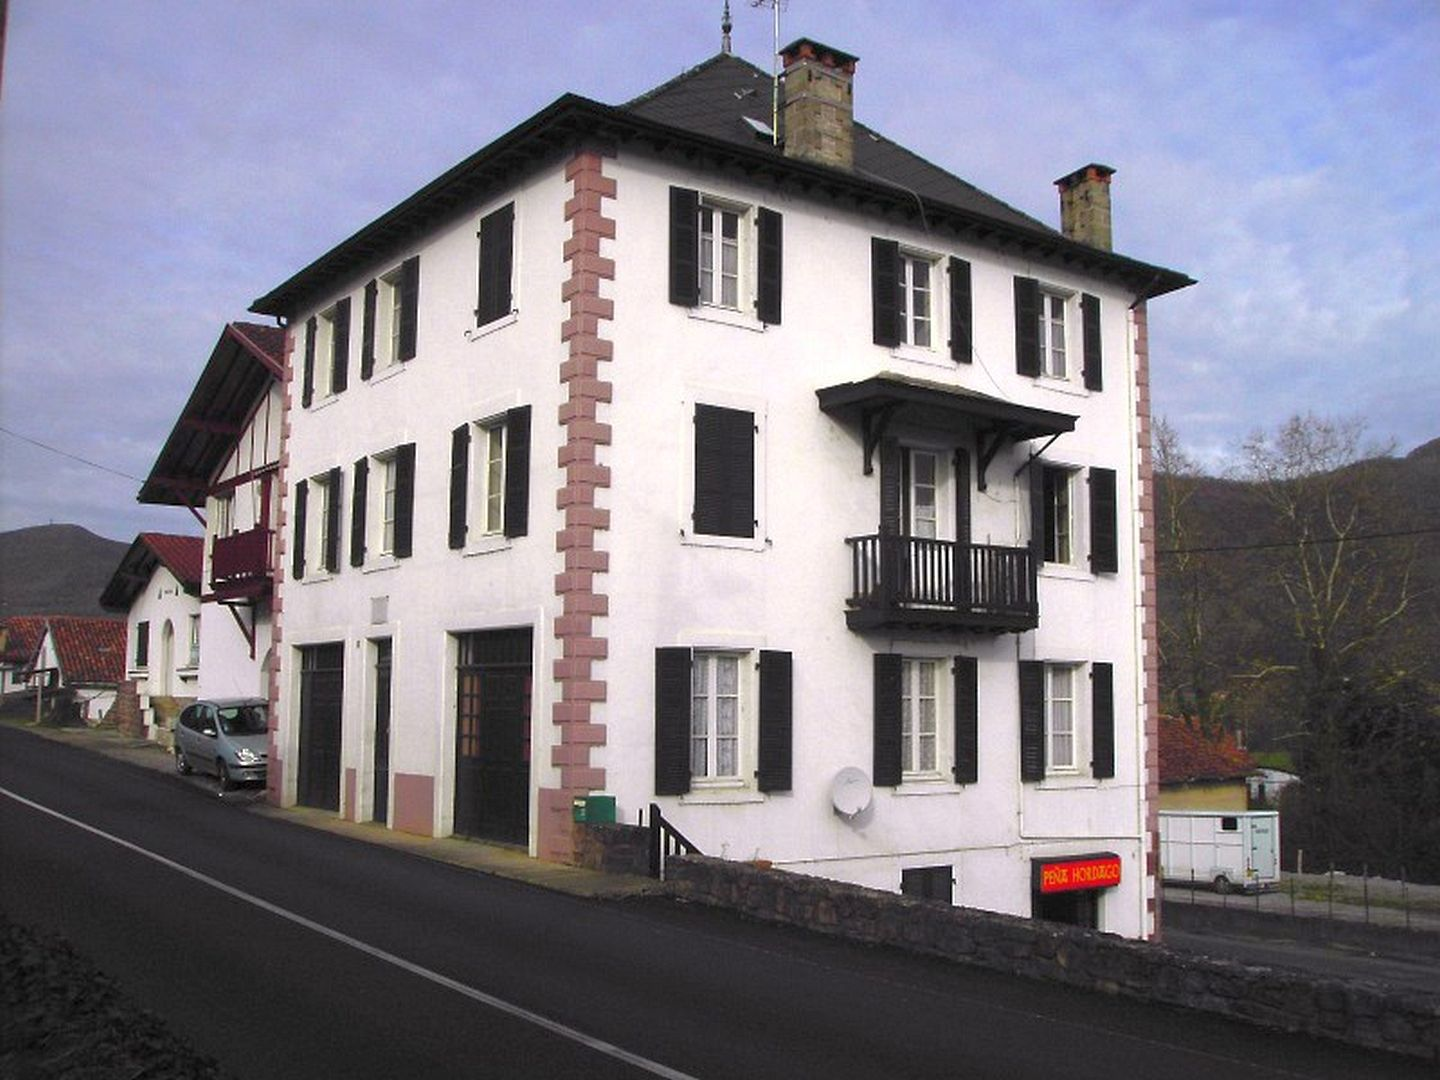 G te compostella saint jean pied de port 64 h bergements - Places to stay in st jean pied de port ...